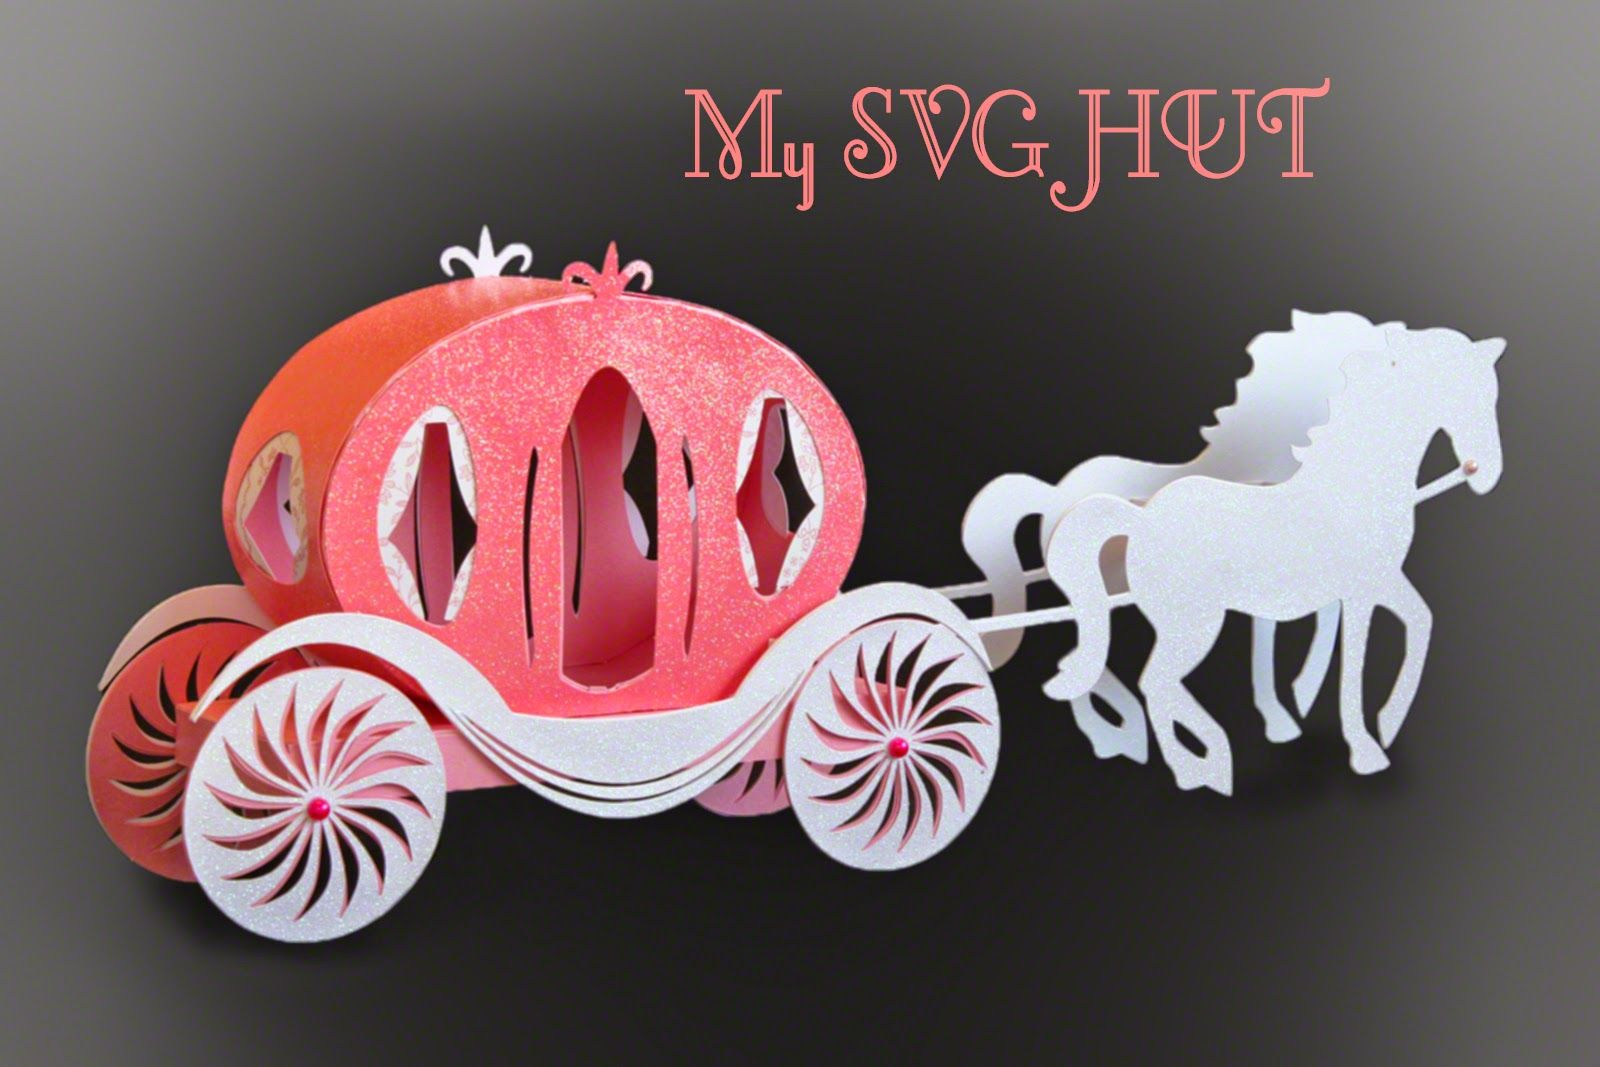 Princess Carriage Assembly Instructions below This design